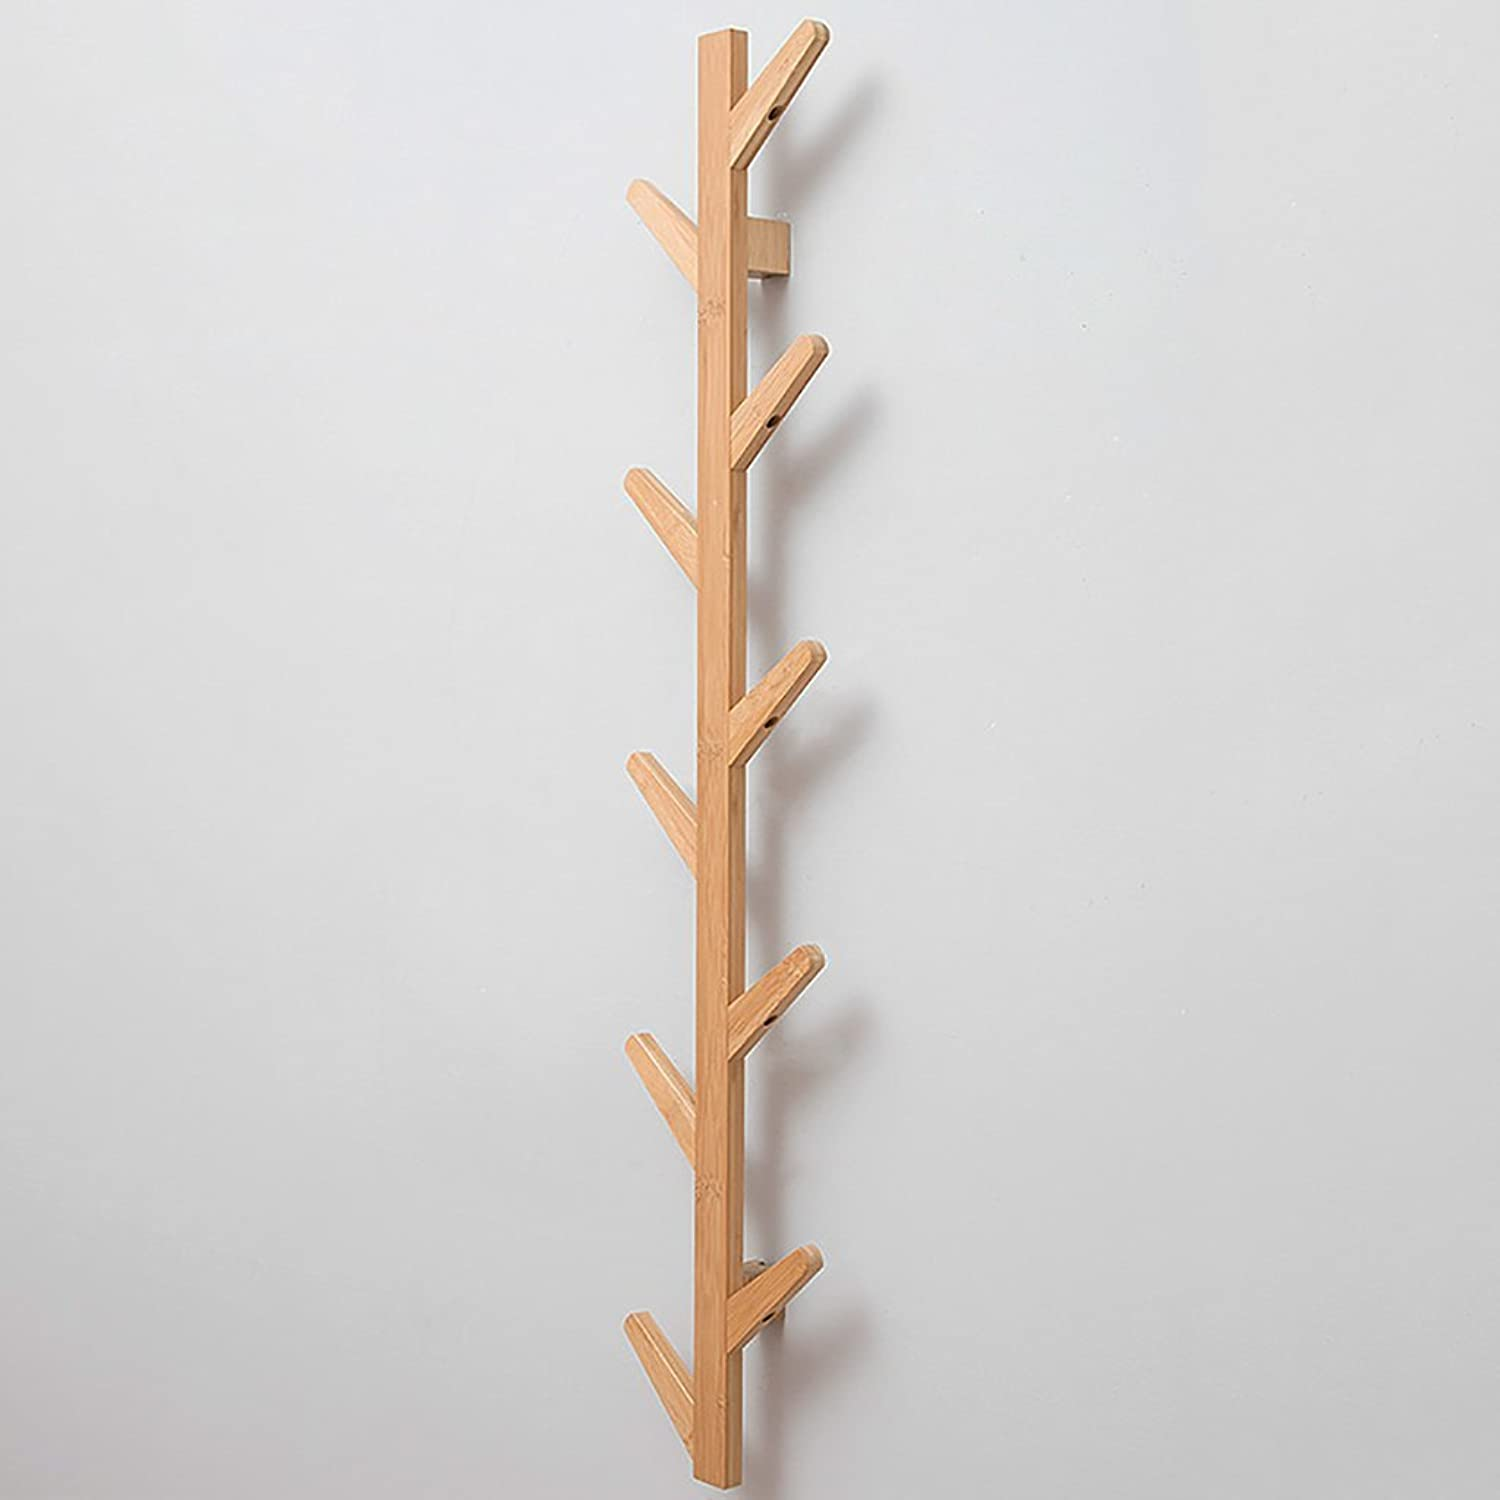 Wall Mounted Coat Rack, Wall-Hung Coat Hooks,Bedroom Living Room Entrance Simple Modern Bamboo System Wall-Mounted Coat Racks. (Size   7  24  123cm)